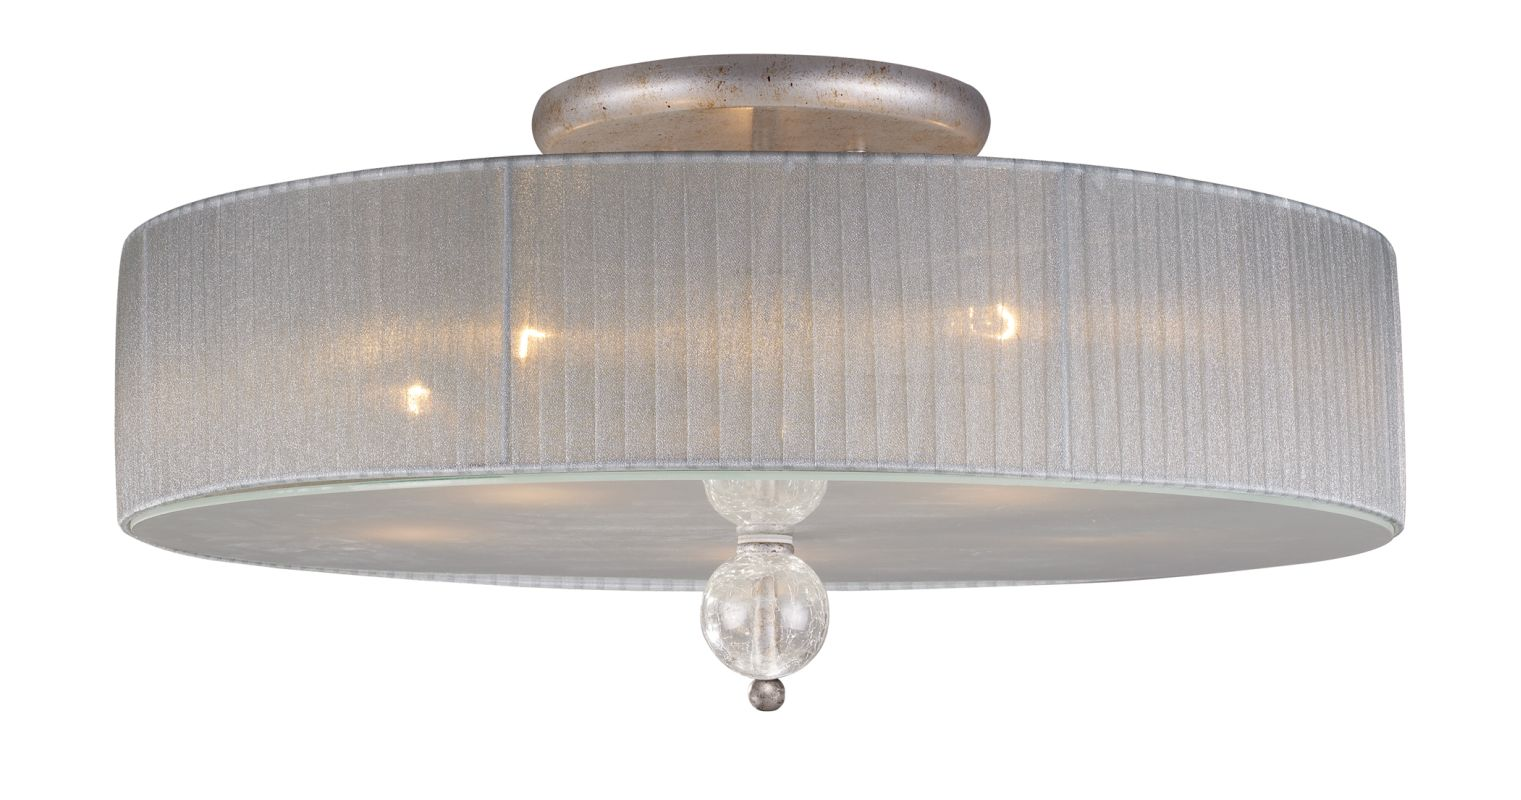 Elk Lighting 20006/5 Alexis 5 Light Semi-Flush Ceiling Fixture Antique Sale $266.00 ITEM: bci857094 ID#:20006/5 UPC: 748119002903 :